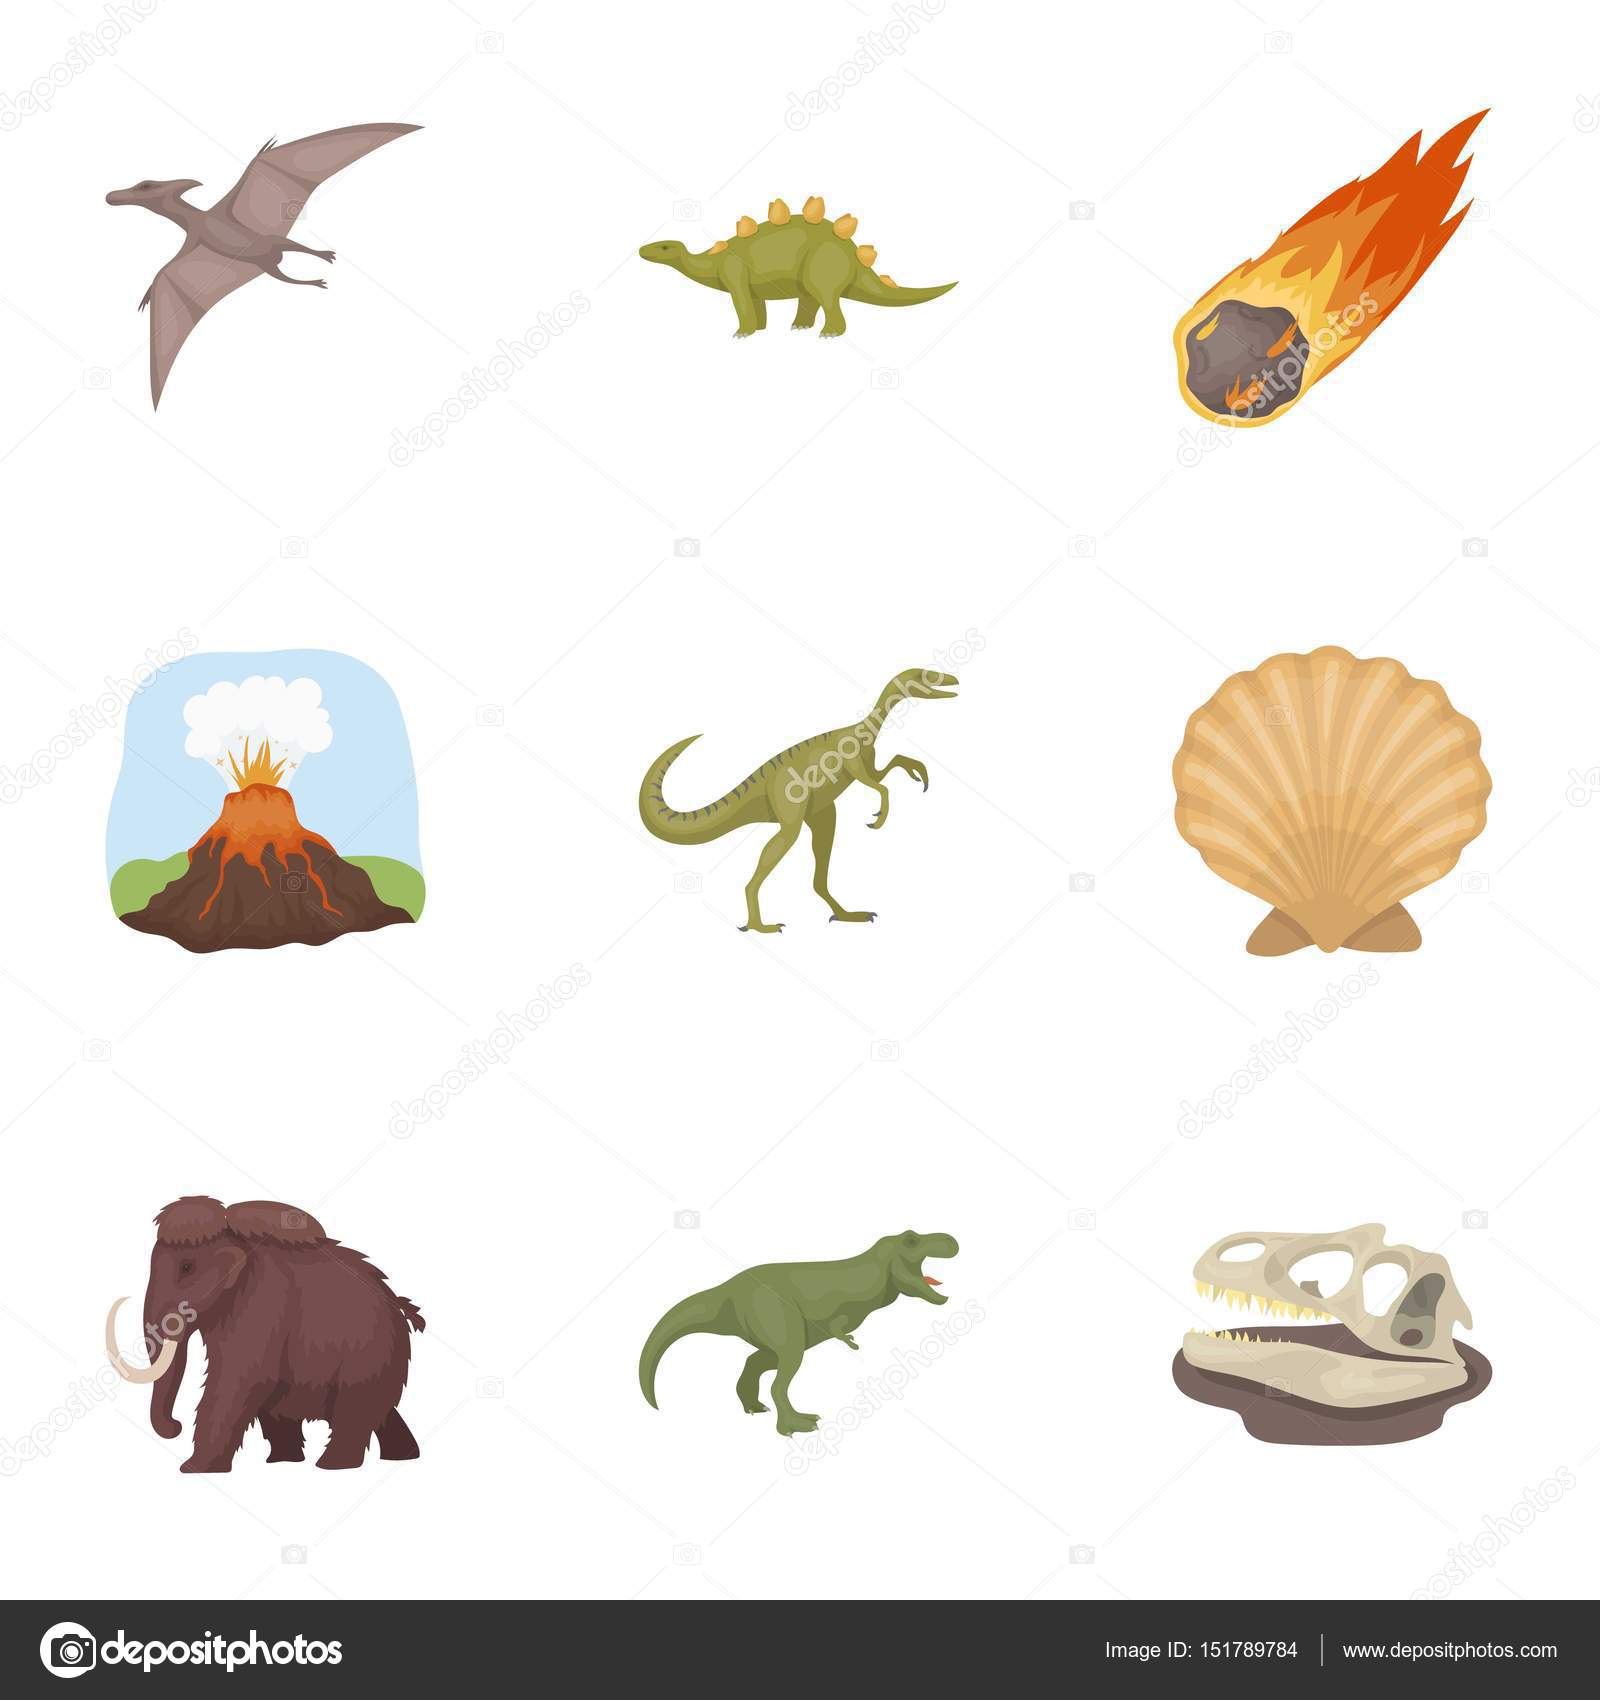 Image of: Glad Ancient Extinct Animals And Their Tracks And Remains Dinosaurs Tyrannosaurs Pnictosaursdinisaurs Depositphotos Ancient Extinct Animals And Their Tracks And Remains Dinosaurs